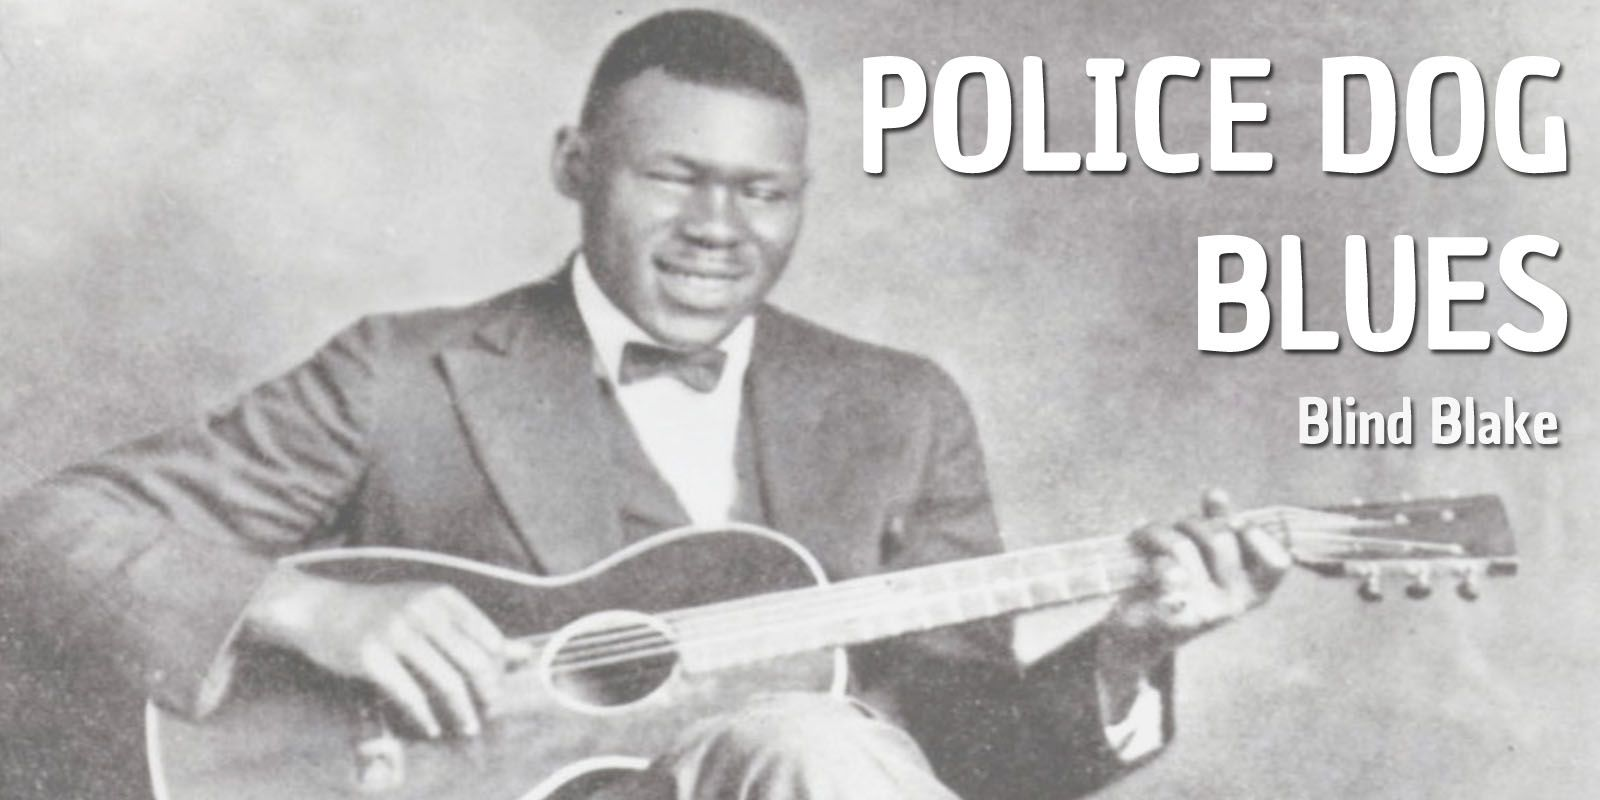 How To Play Police Dog Blues (Blind Blake) Burninguitar show you how to play Police Dog Blues by Blind Blake, the king of ragtime guitar. A great classic of Acoustic Blues Fingerstyle Guitar.